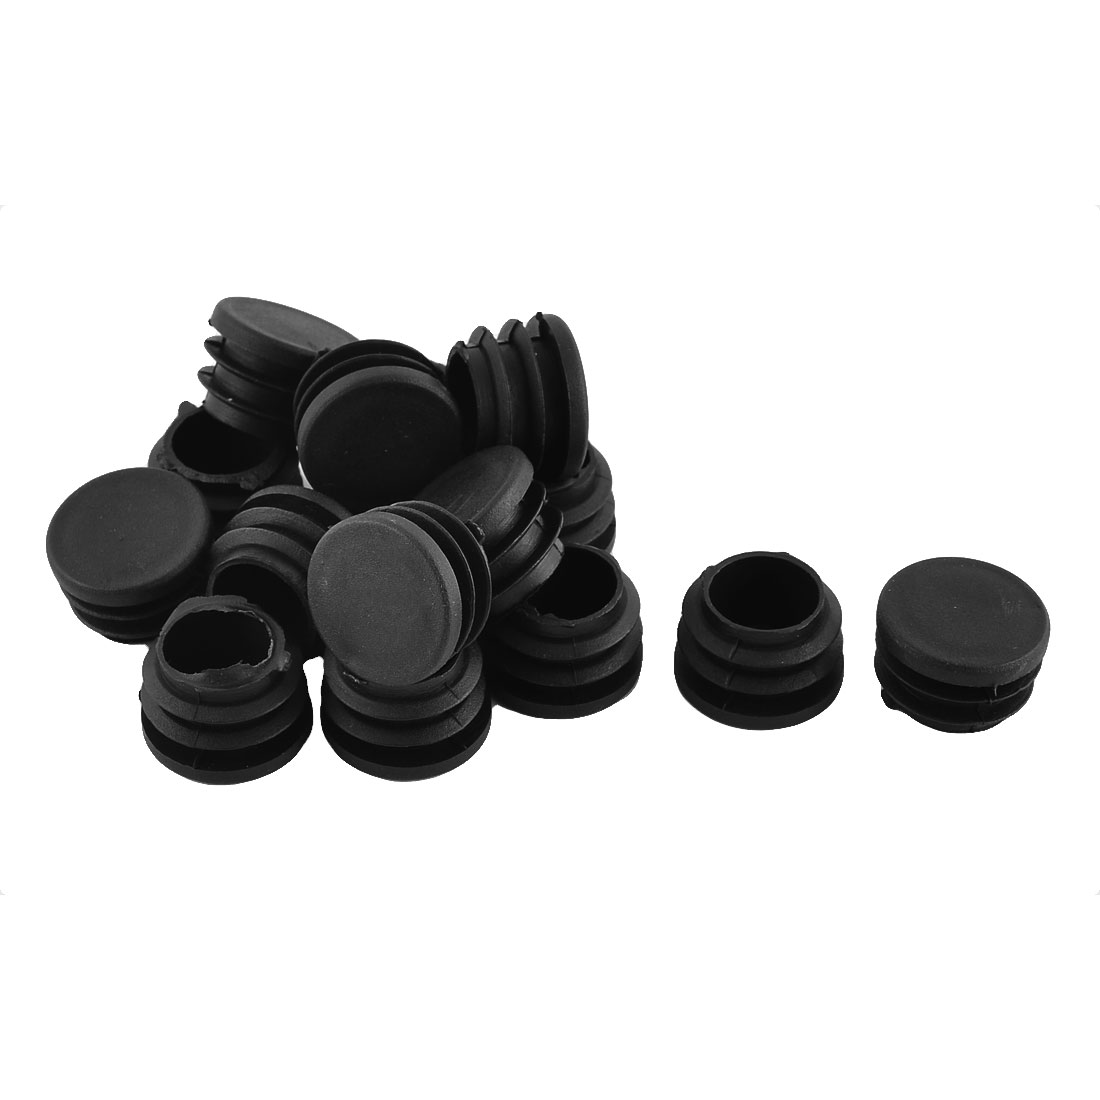 Home Furniture Legs Plastic Round Tube Insert End Caps Covers 25mm Dia 16pcs